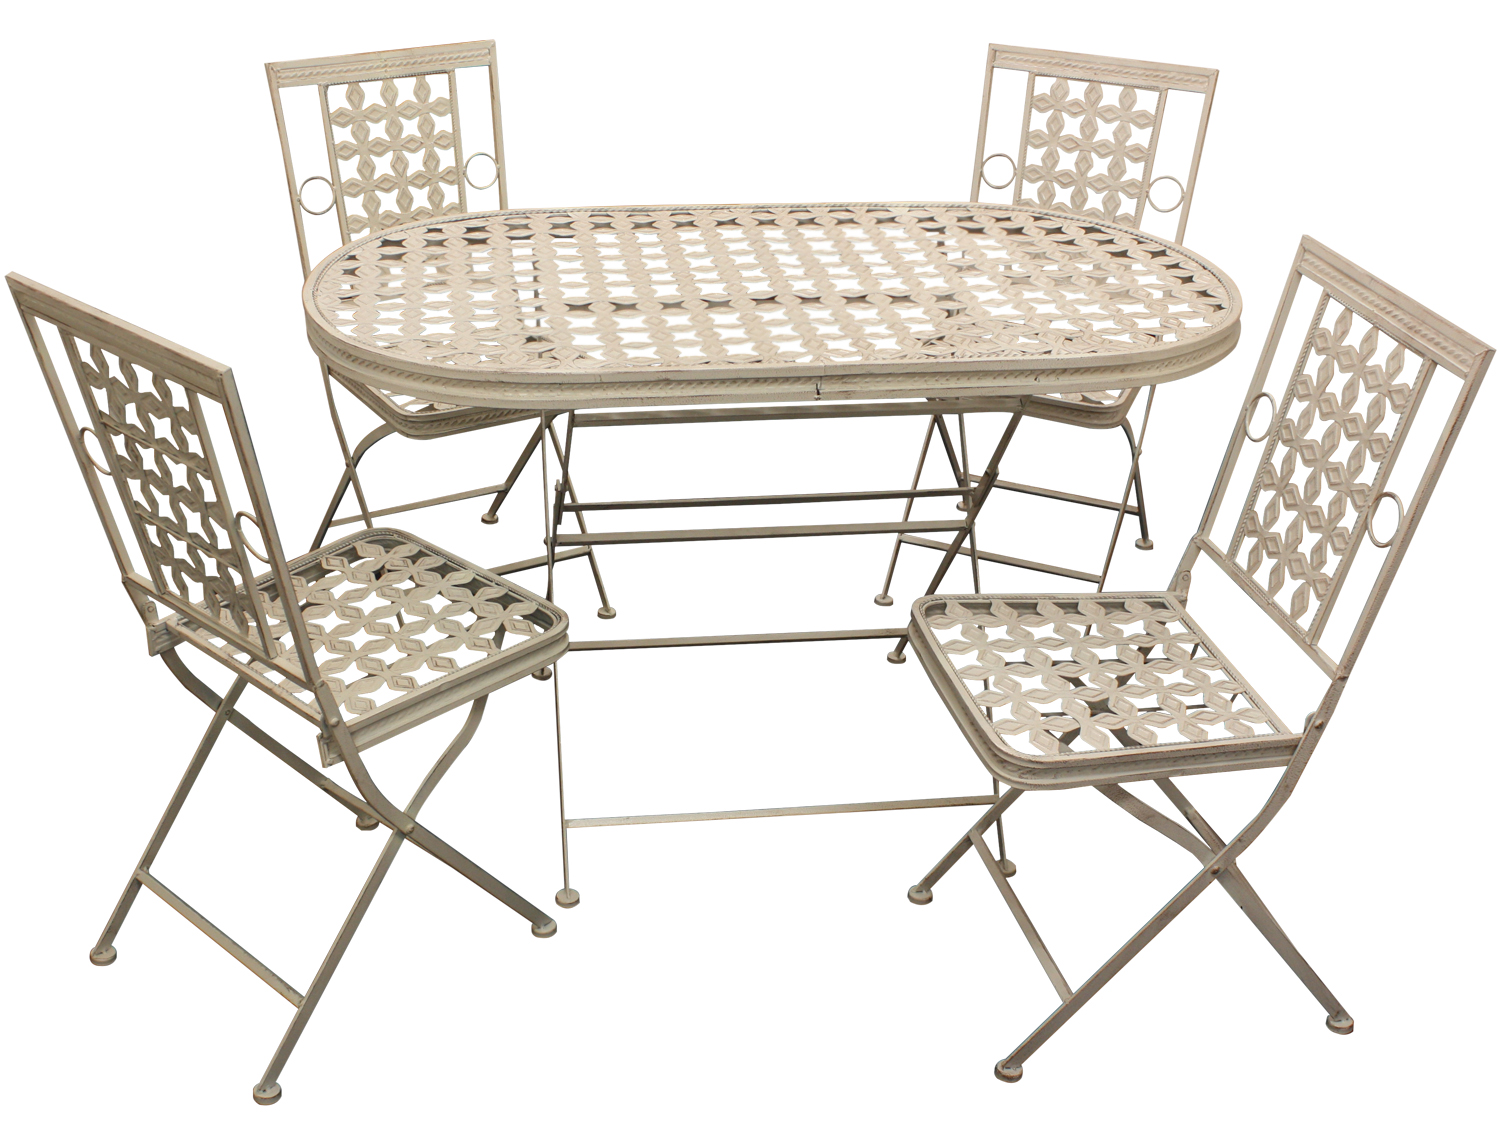 Maribelle folding metal outdoor garden patio dining table for Small patio table and 4 chairs